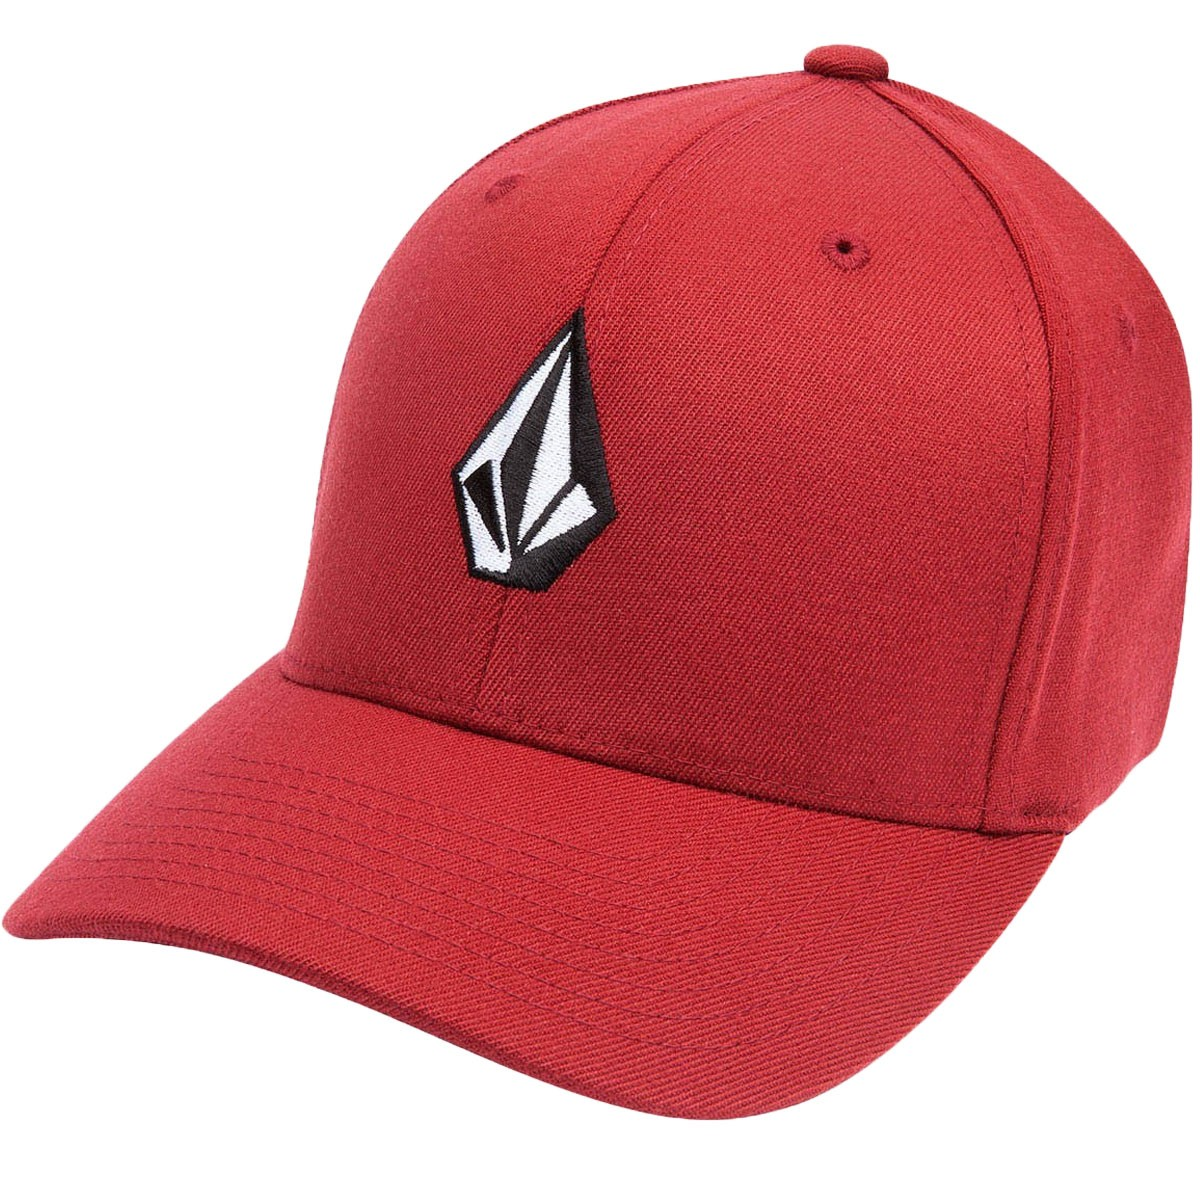 7148efb0f73 volcom-full-stone-flexfit-hat-crimson-red 2.1506668192.jpg